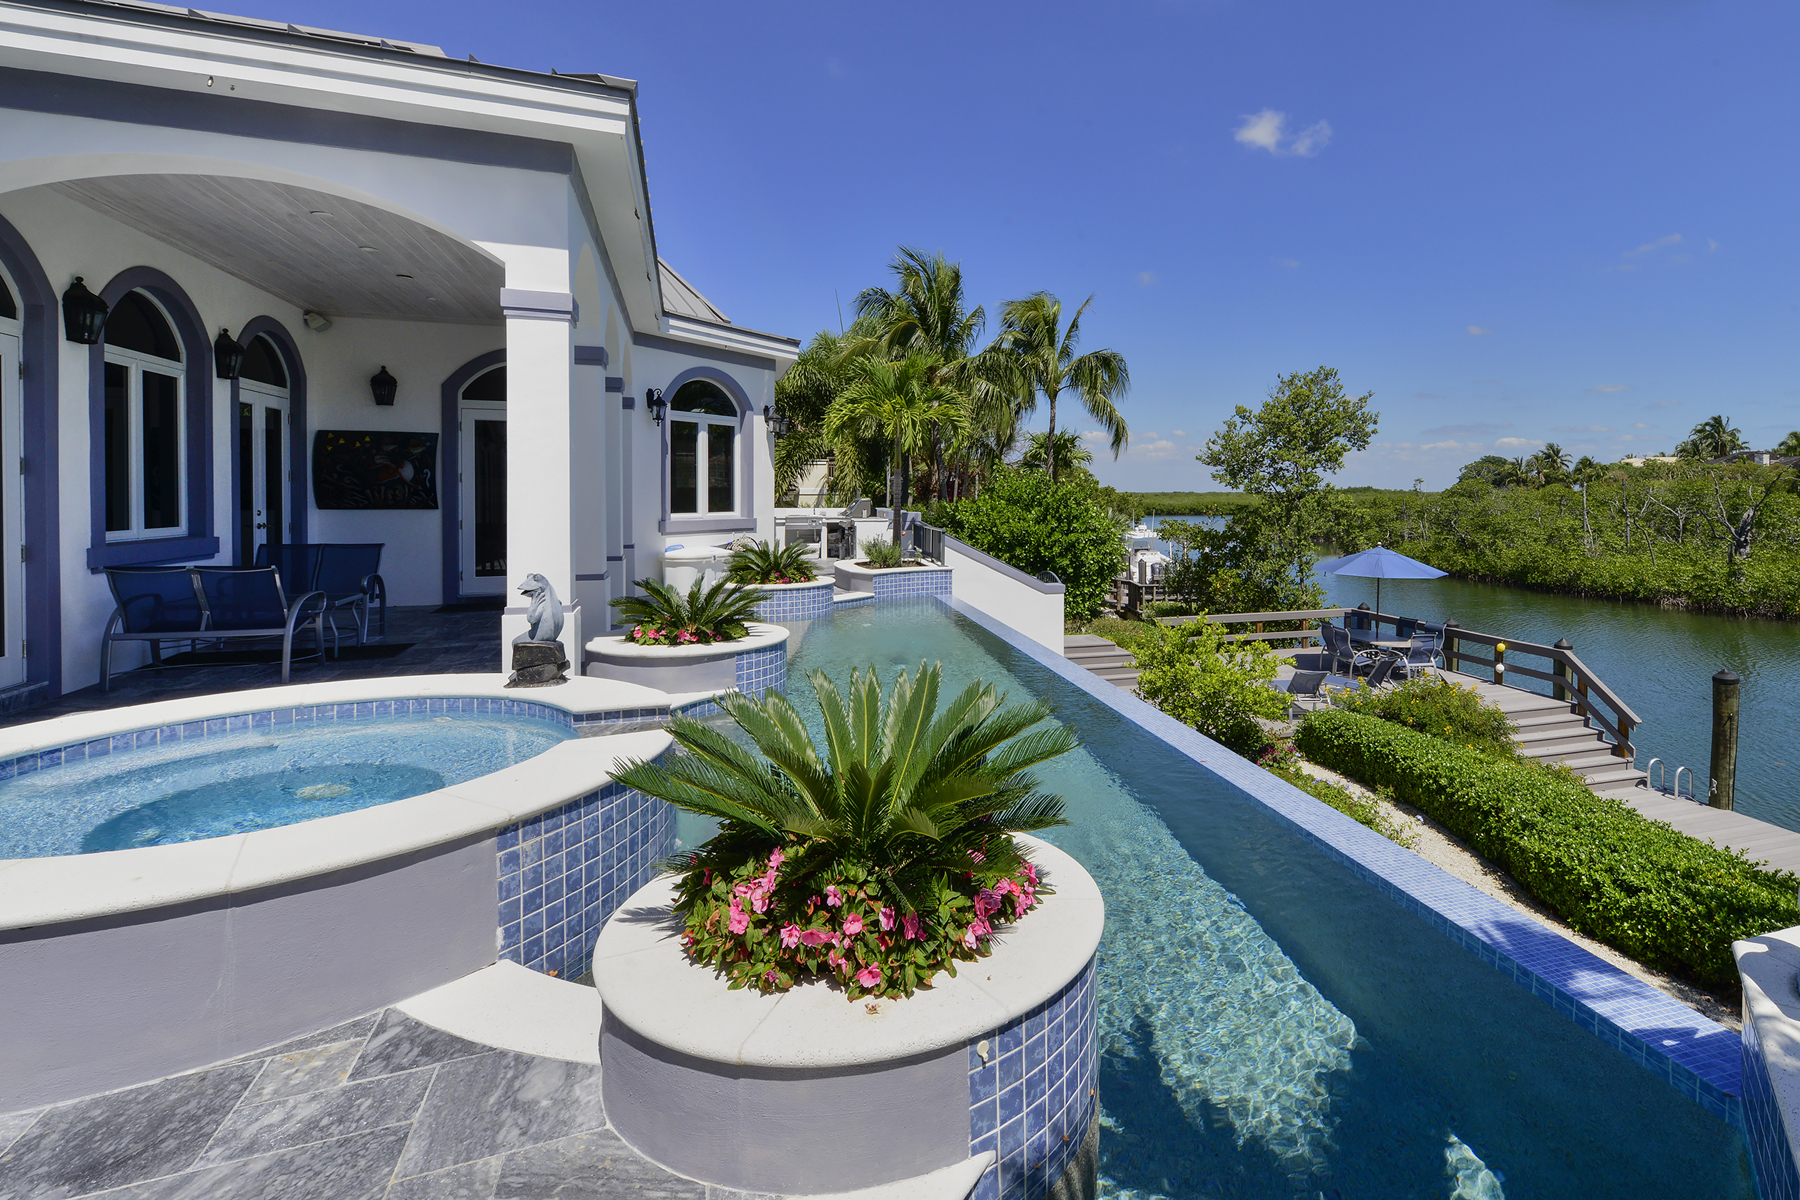 Casa para uma família para Venda às Custom Built Waterfront Home at Ocean Reef 17 North Pelican Drive Ocean Reef Community, Key Largo, Florida, 33037 Estados Unidos